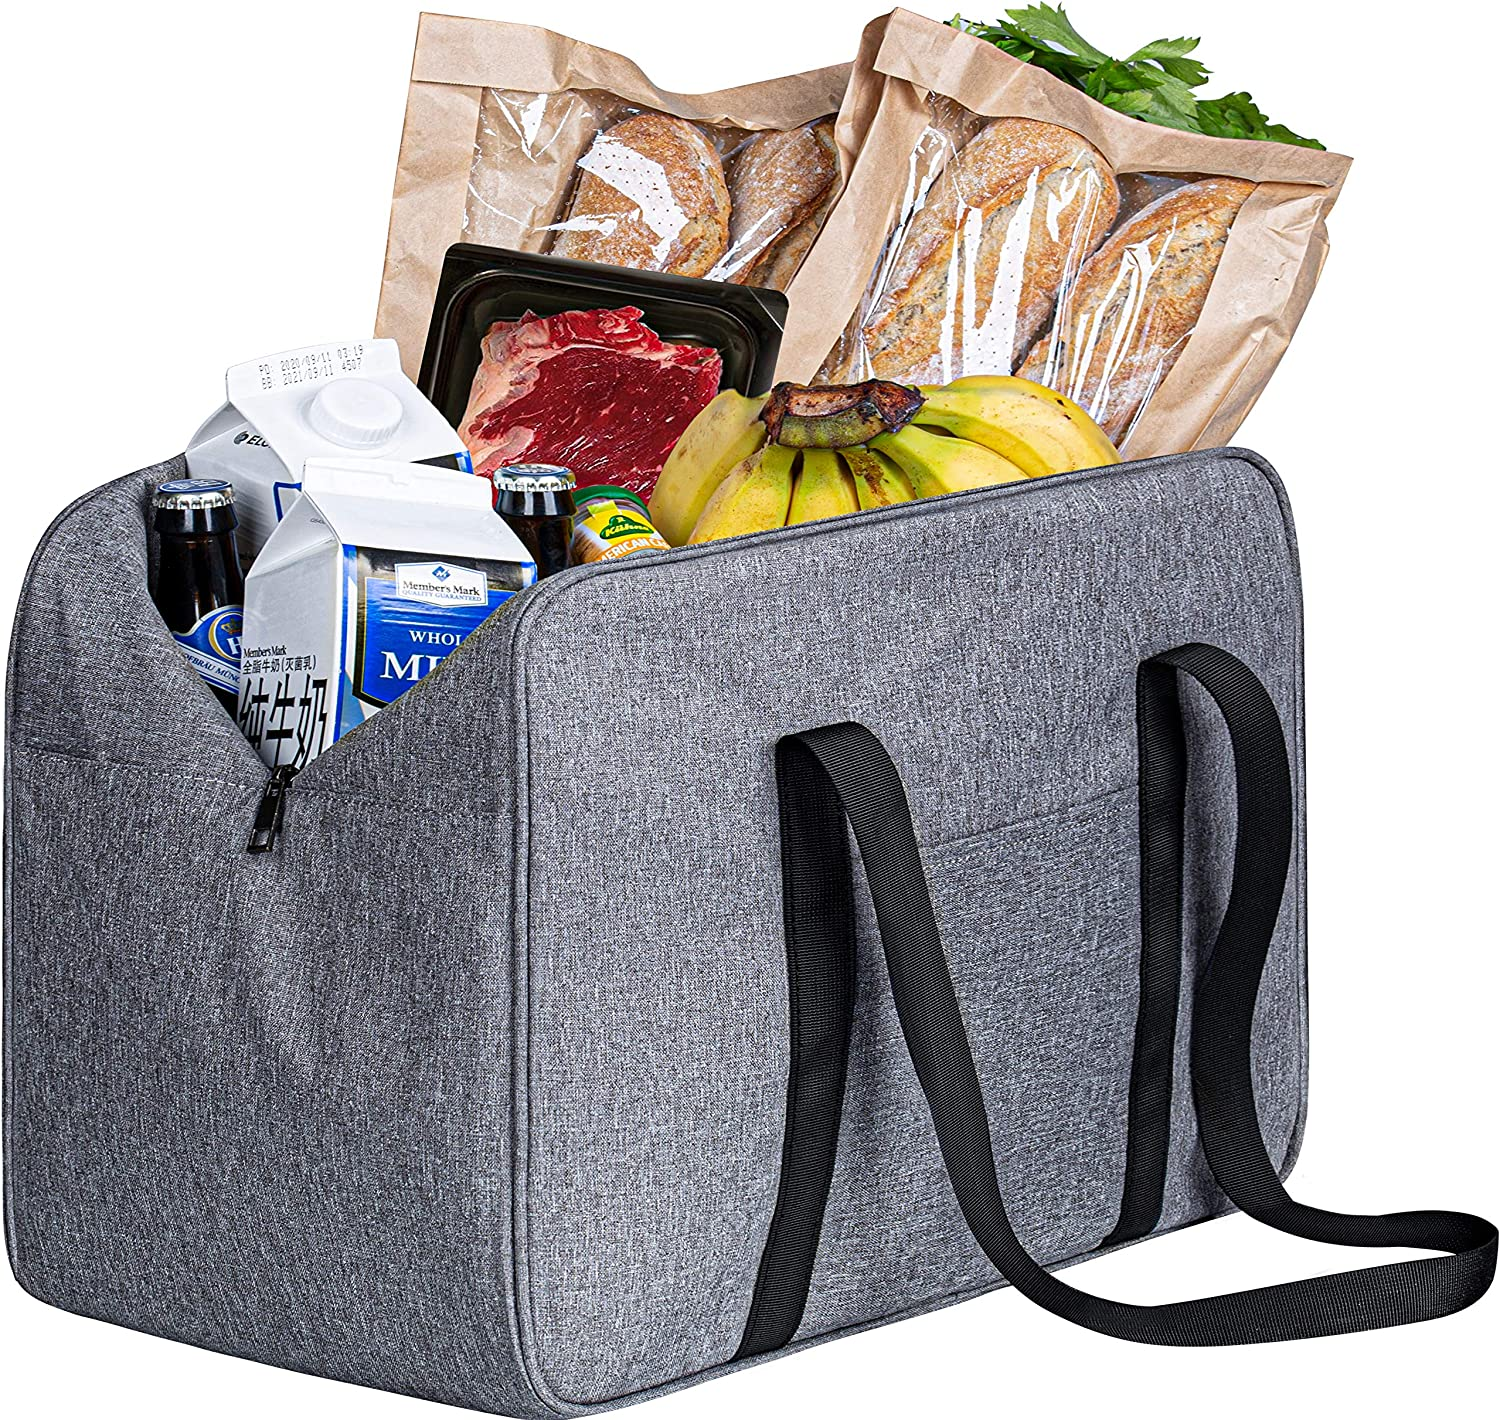 SLEEPING LAMB Heavy Duty Reusable Grocery Bags Tote Insulated Shopping Bags for Groceries with Extra Long Handles & Reinforced Edge, Picnic, Travelling, Camping